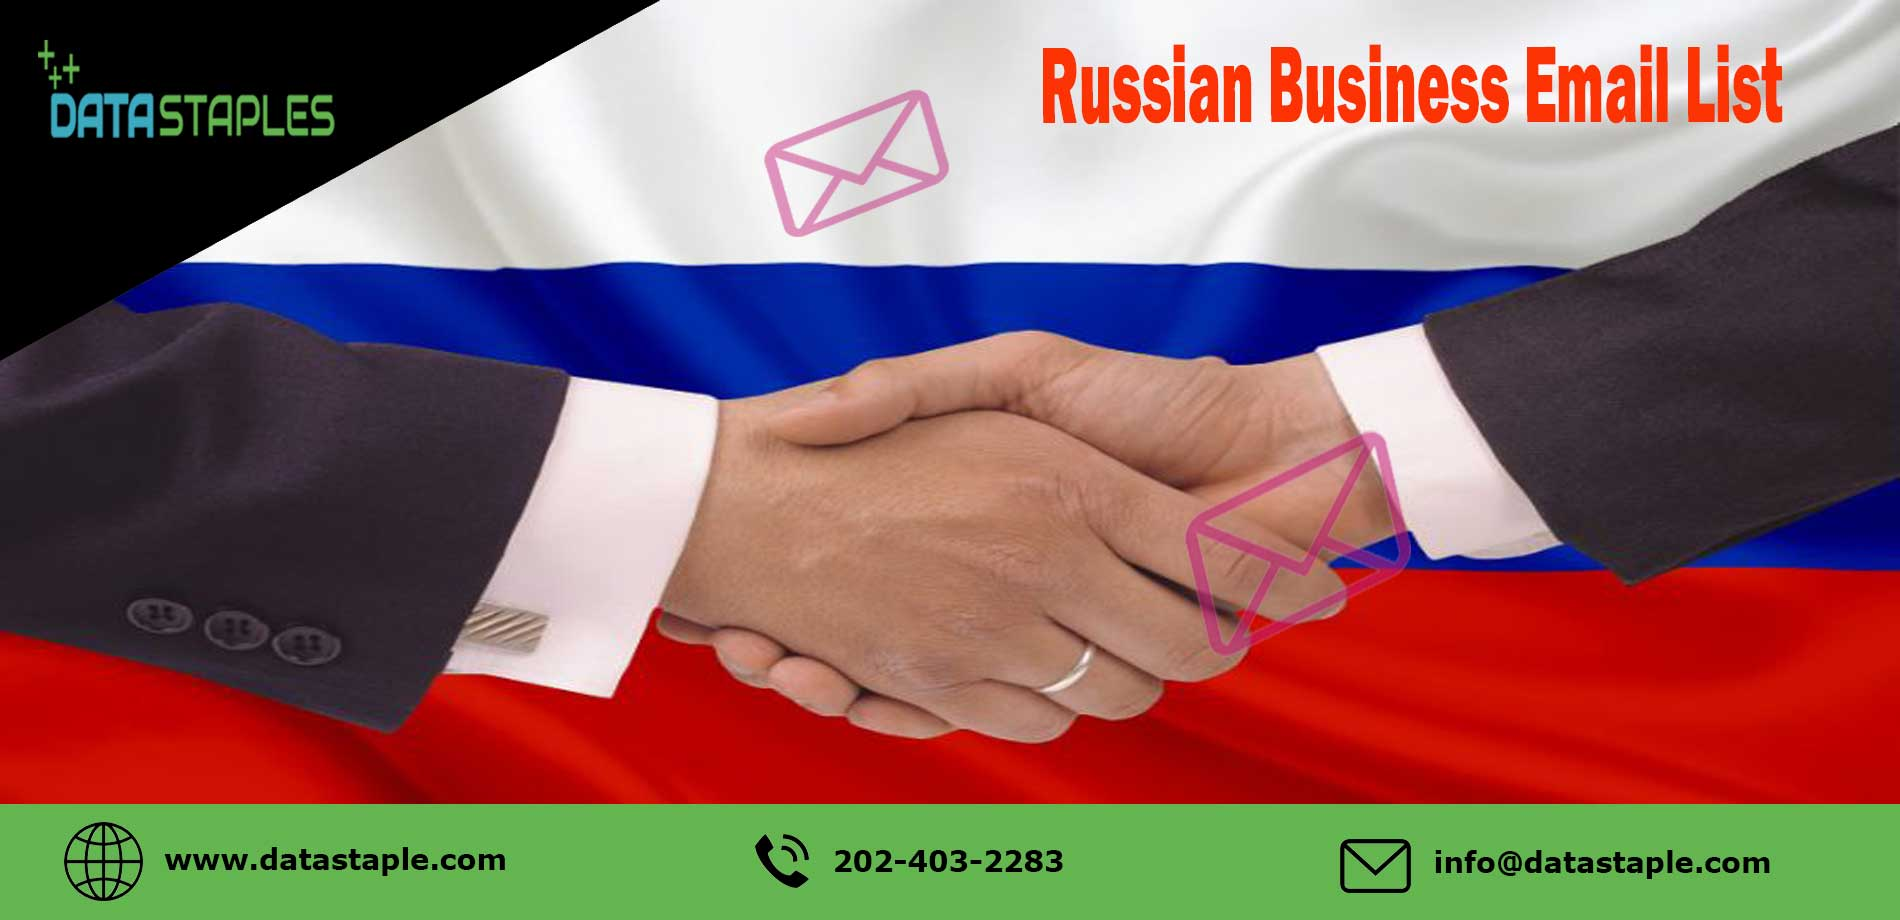 Russian Business Email List | DataStaples